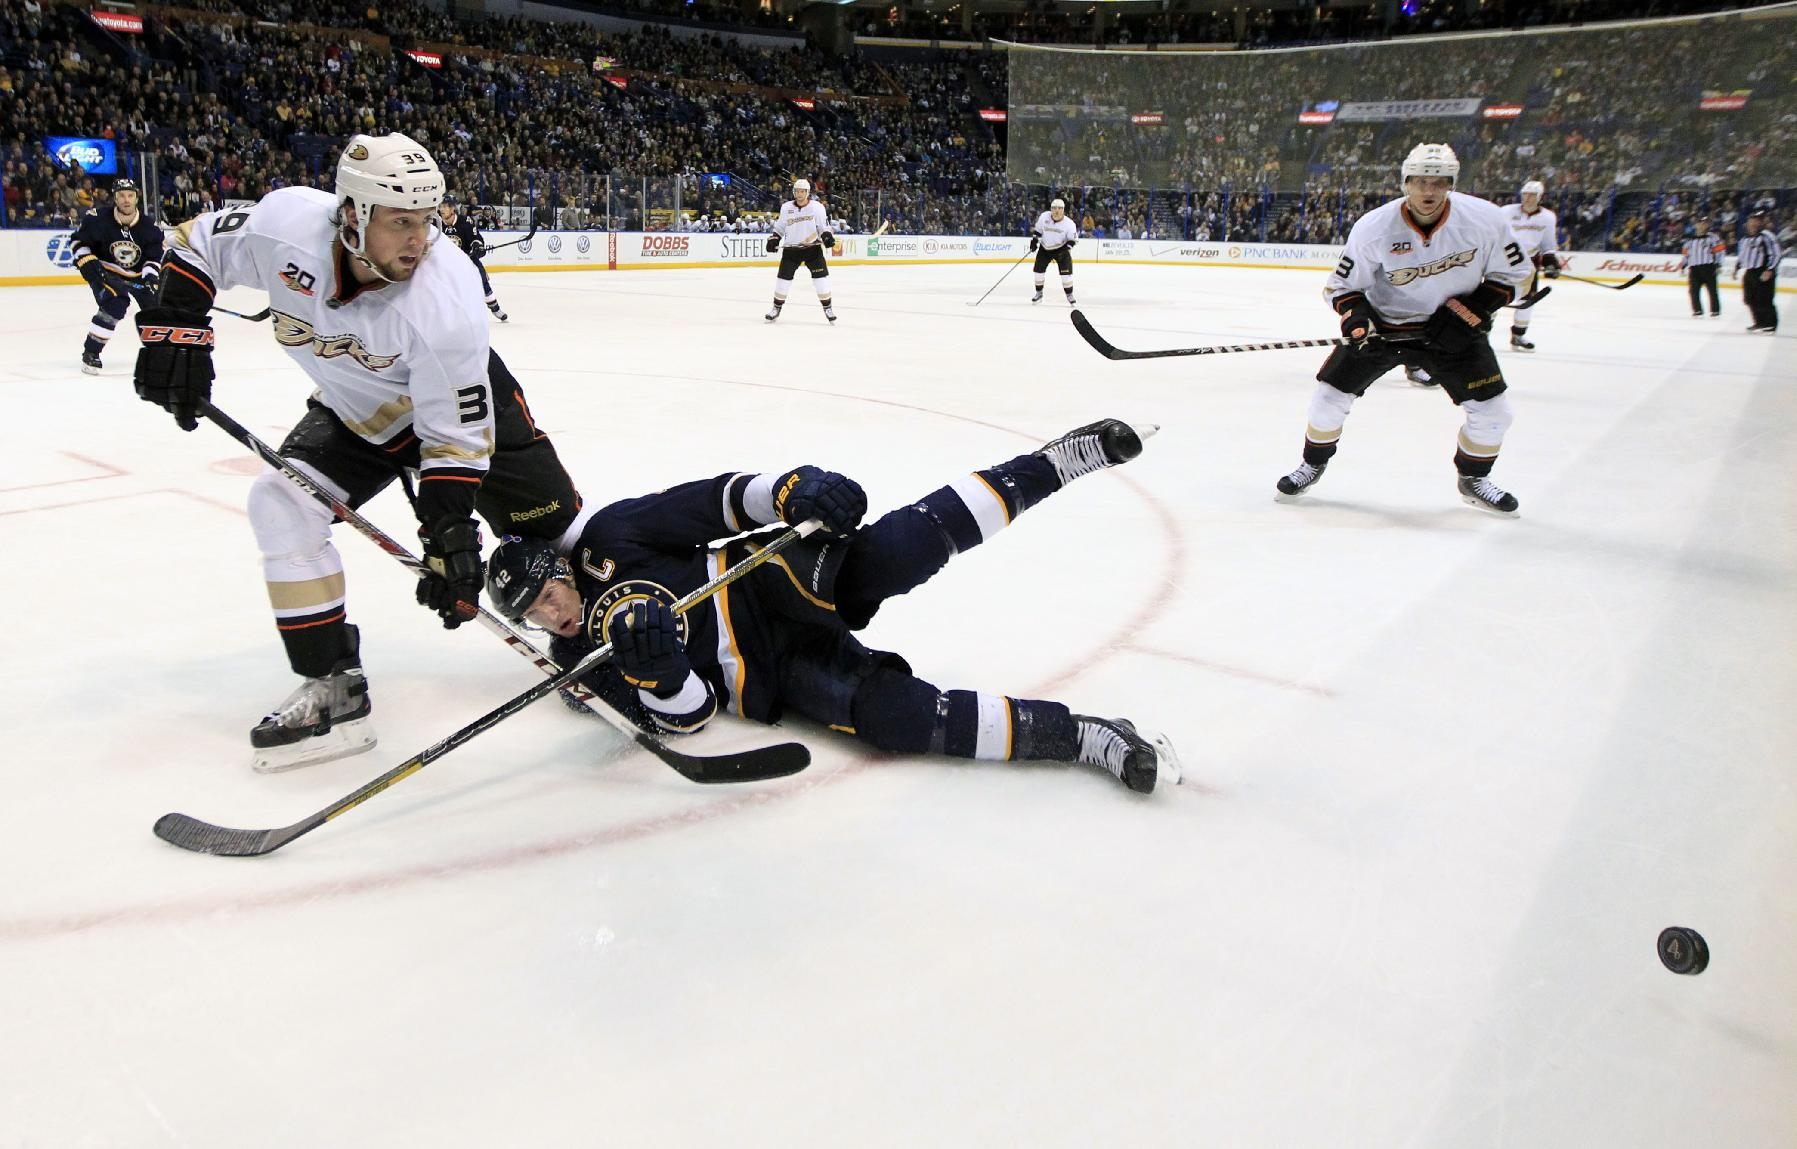 St. Louis Blues' David Backes, center, falls as he chases after a loose puck along side Anaheim Ducks' Matt Beleskey, left, and Jakob Silfverberg, right, of Sweden, during the third period of an NHL hockey game on Saturday, Jan. 18, 2014, in St. Louis. The Ducks won 3-2